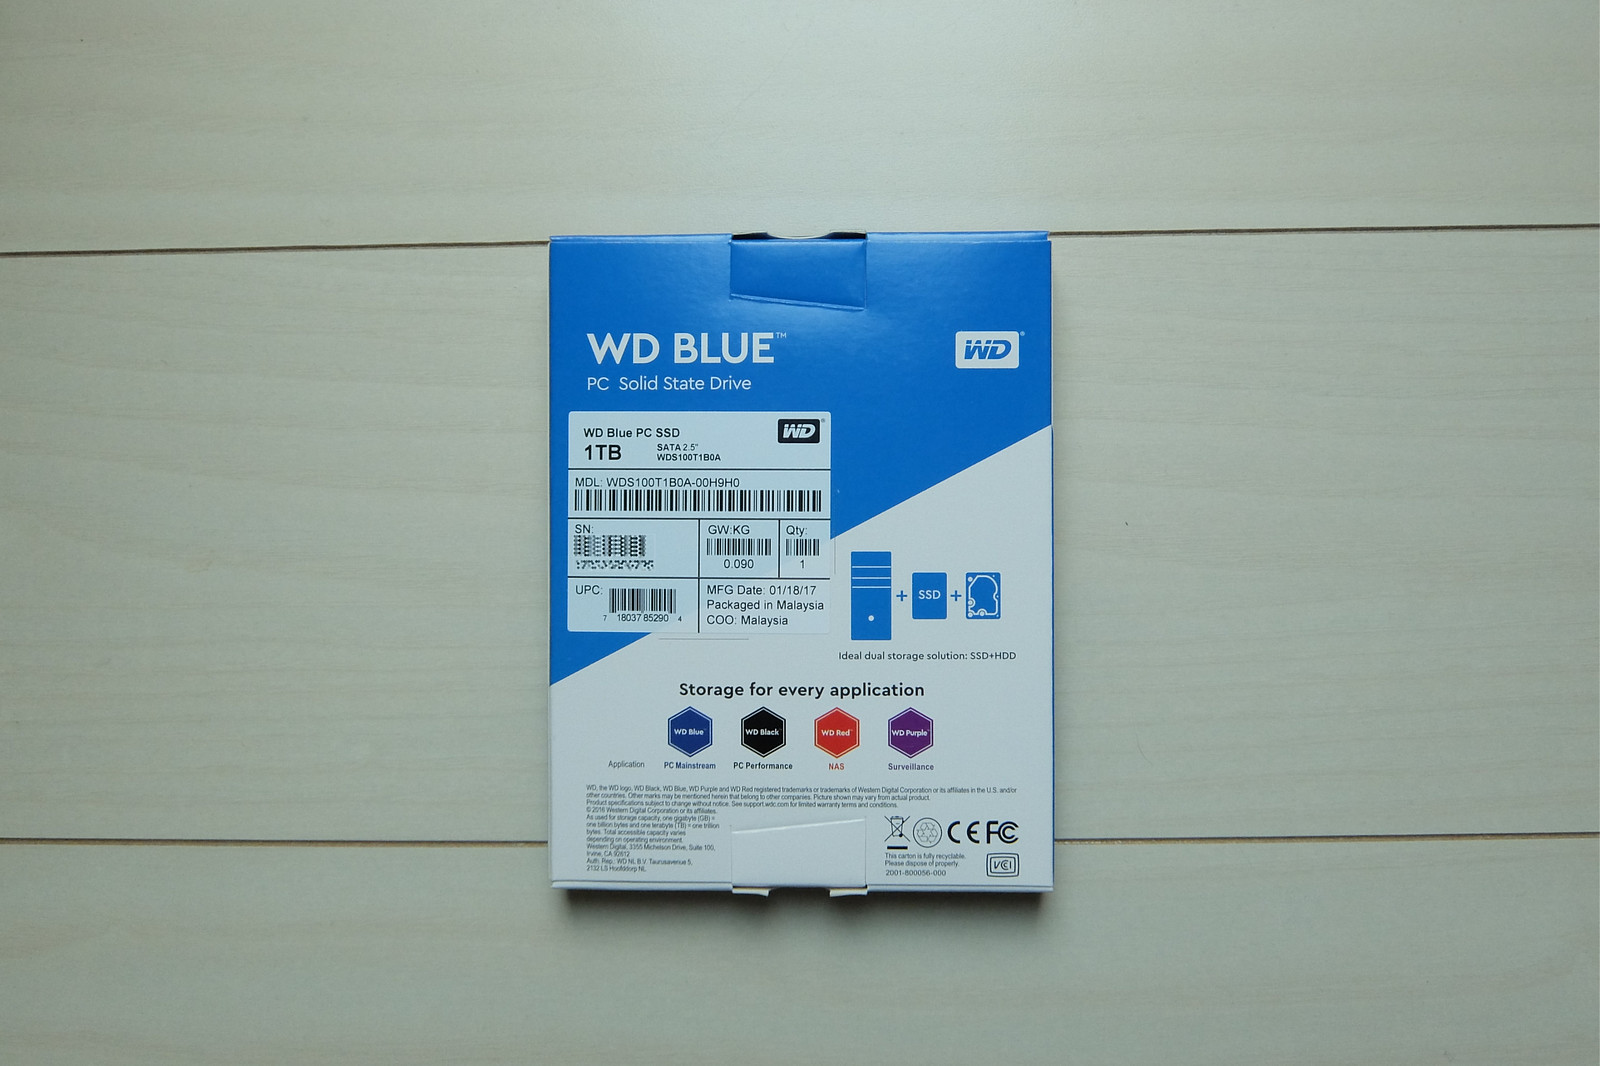 Western Digital SSD WD BLUE